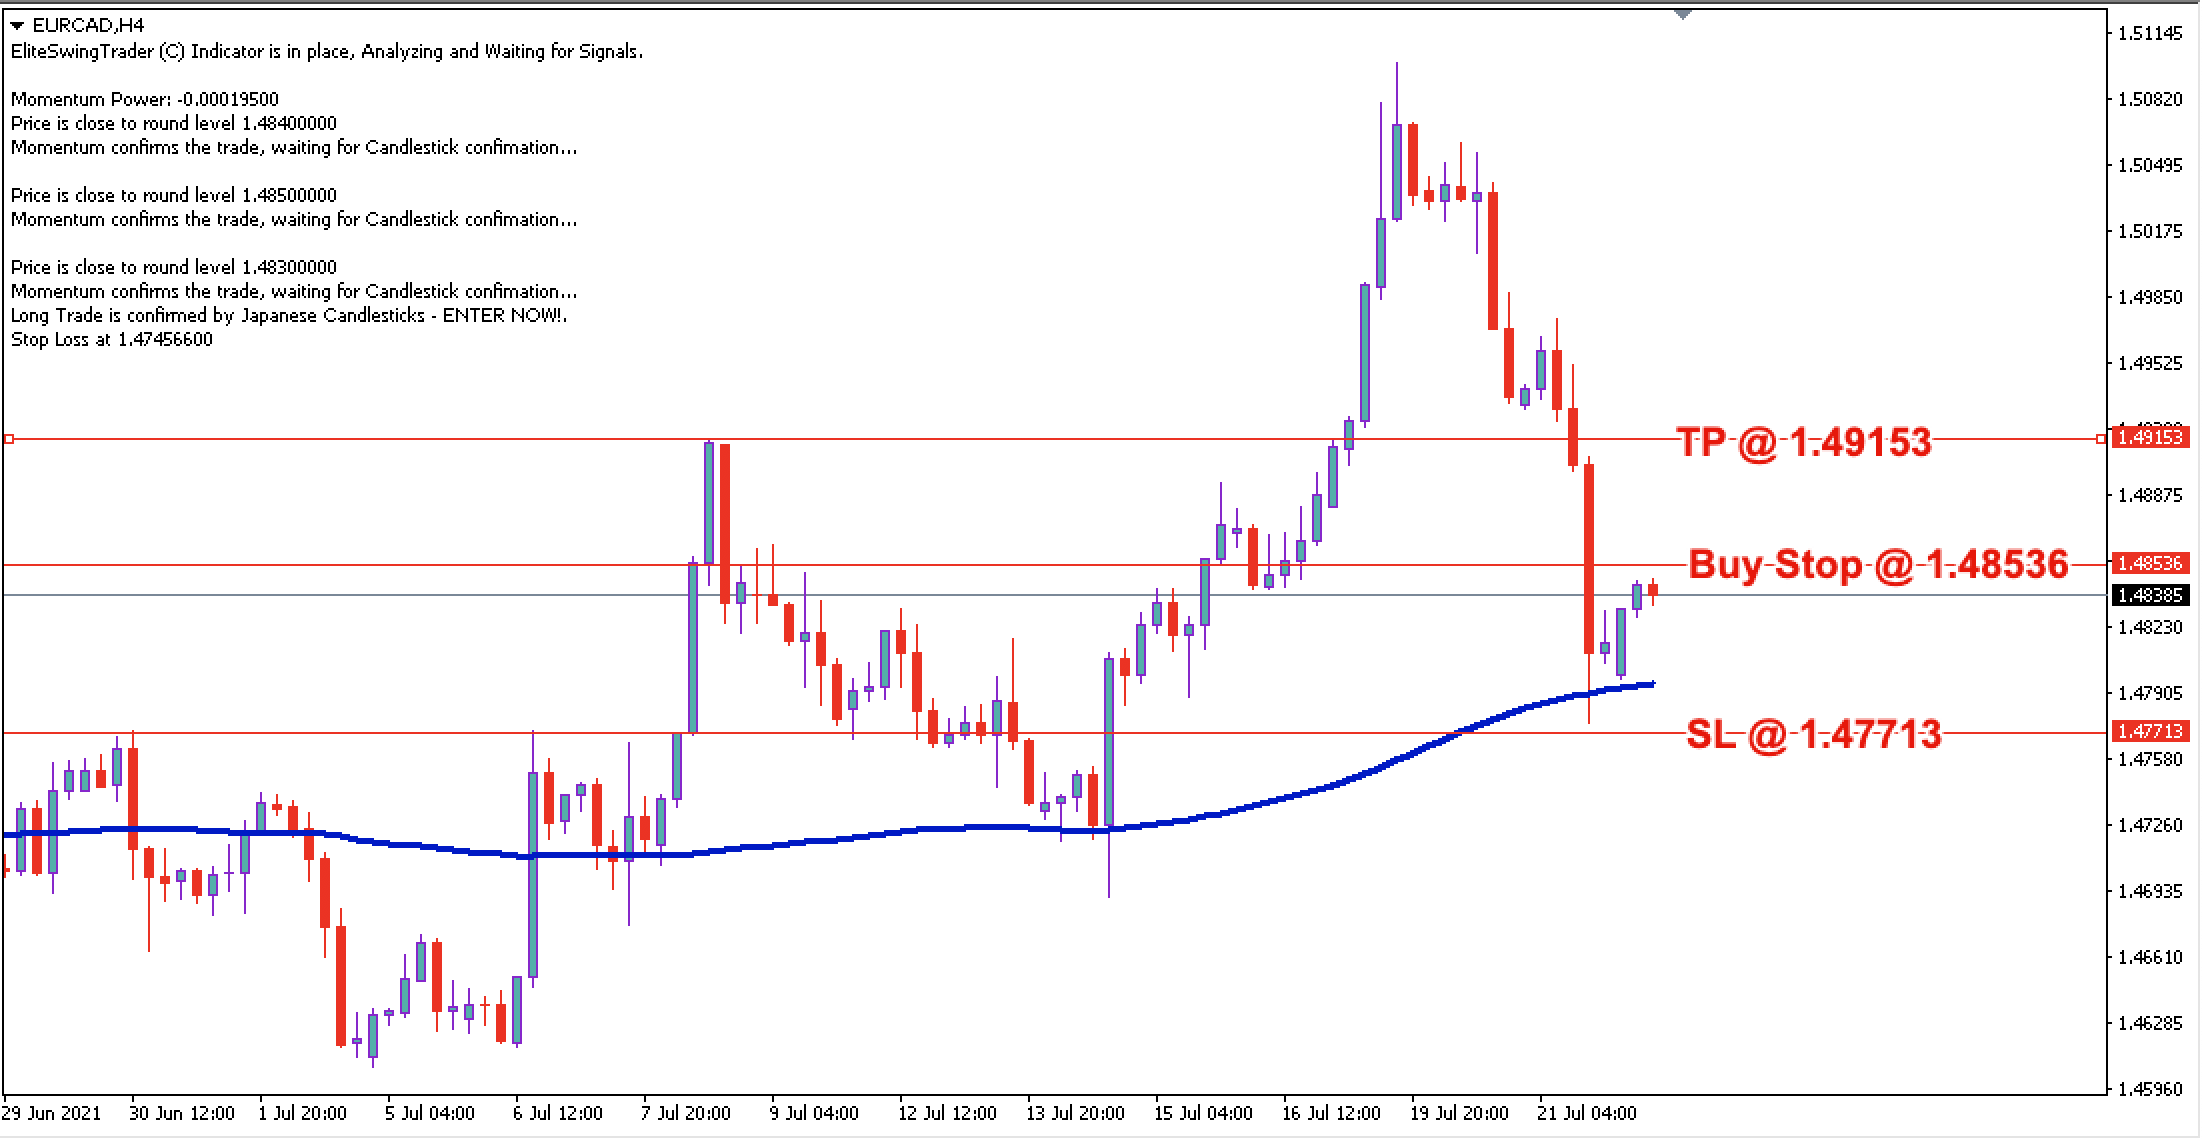 EUR/CAD Daily Price Forecast – 22nd July 2021